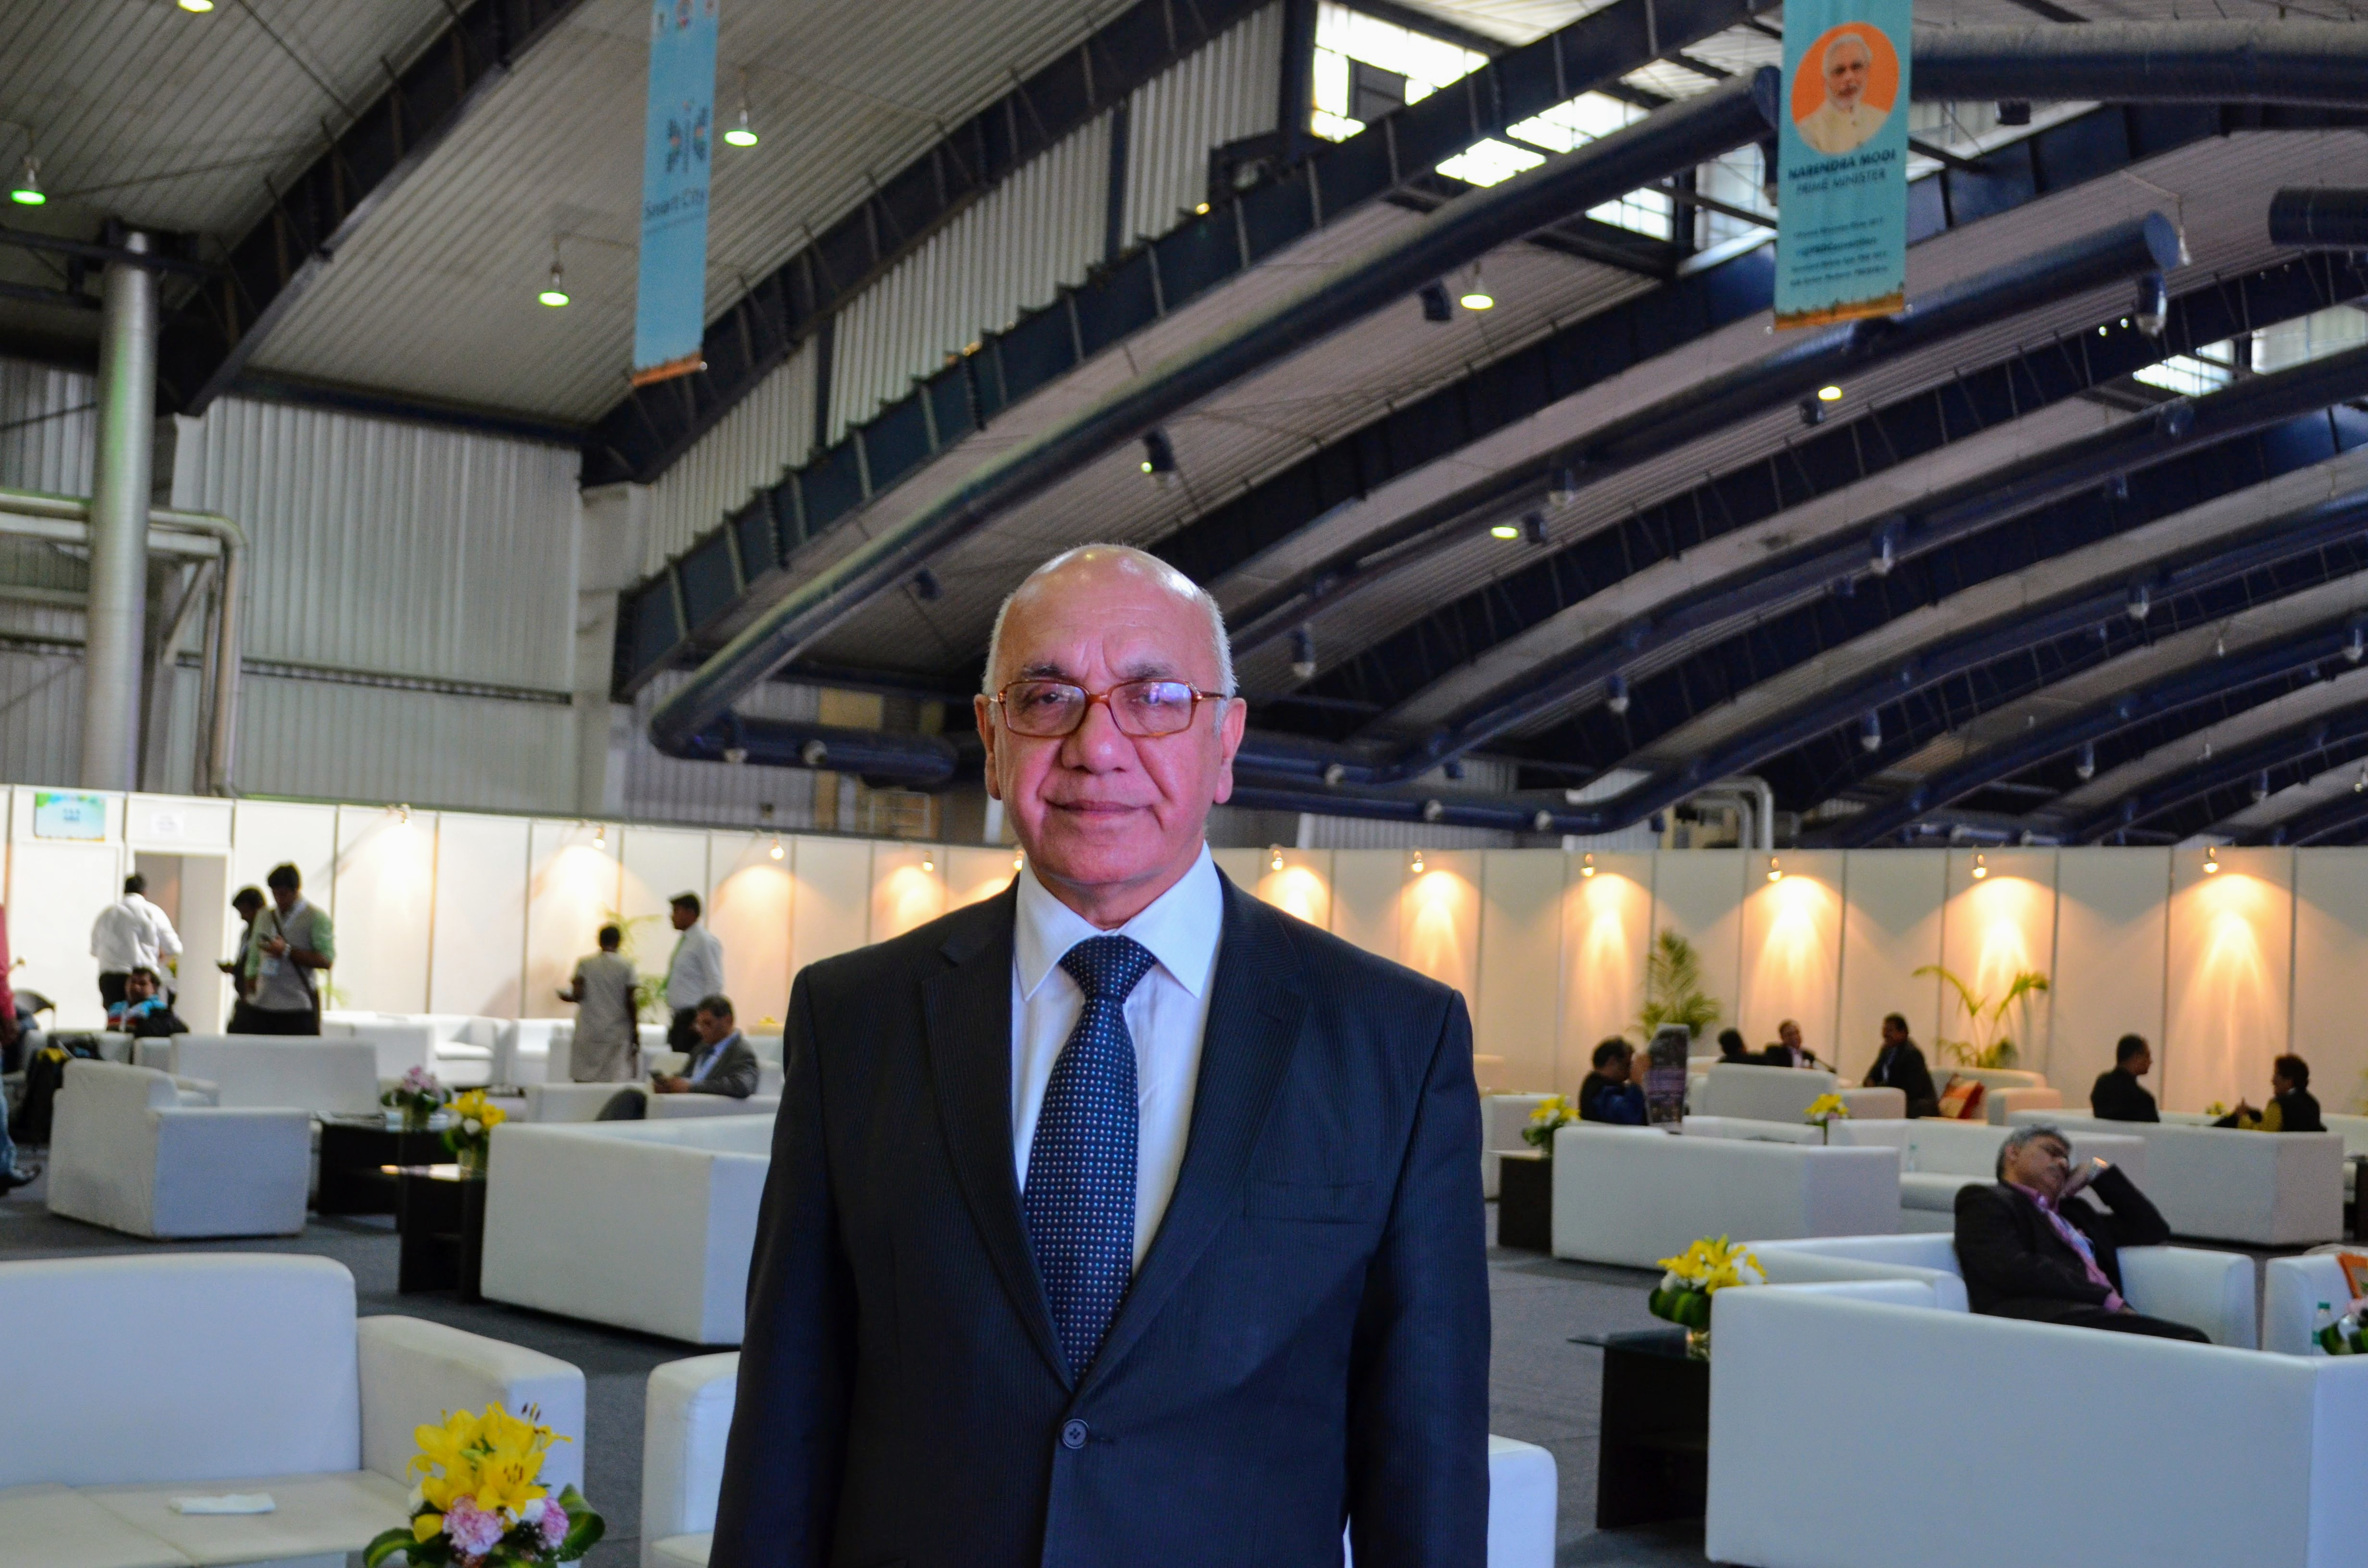 The Hon Virendra Sharma. Photo: Connected to India